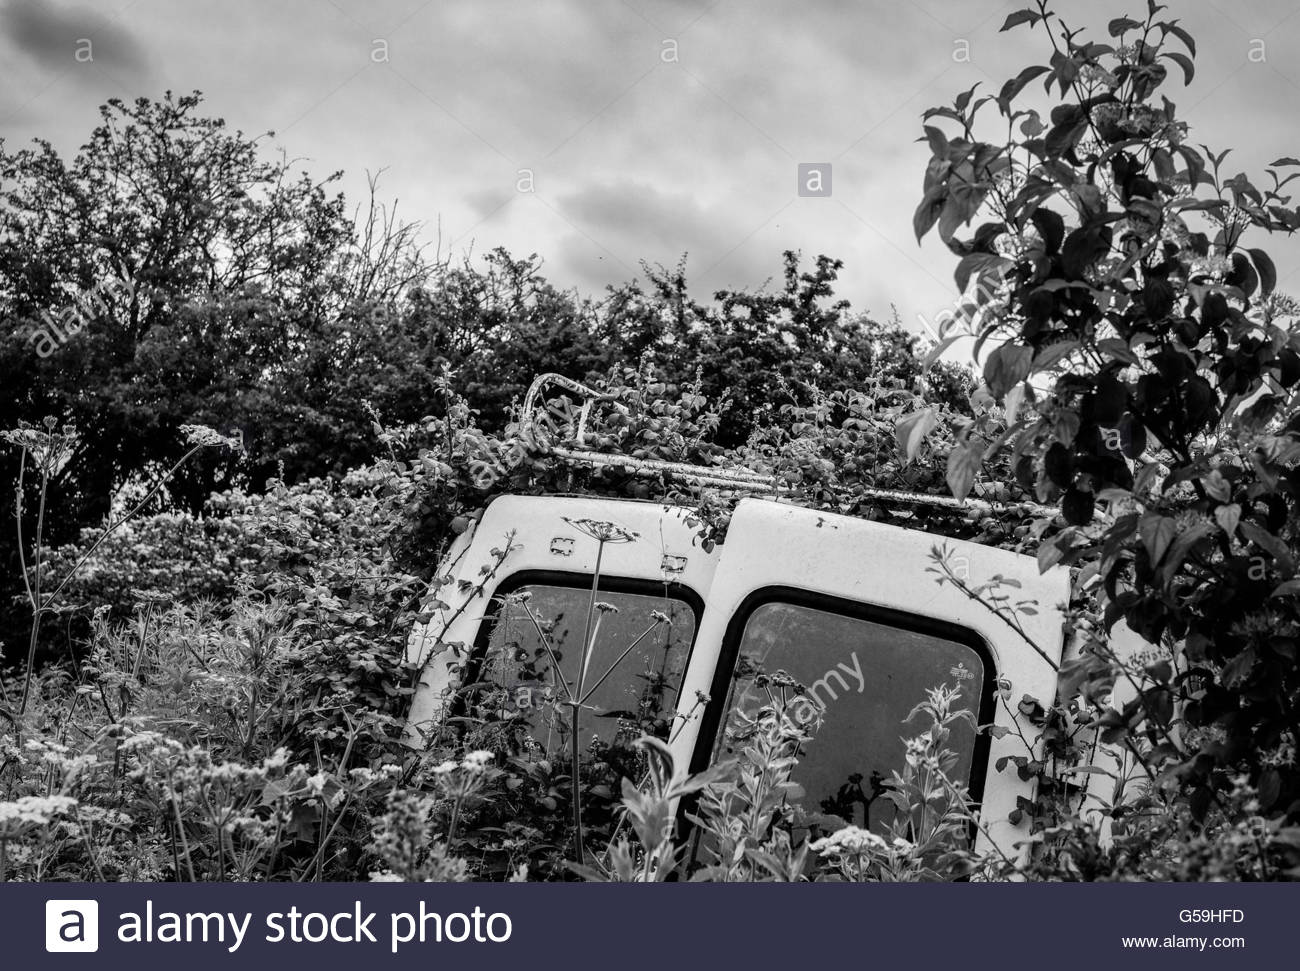 Old, abandoned van seen left at the side of a field in a rural location with foliage growing over it. - Stock Image